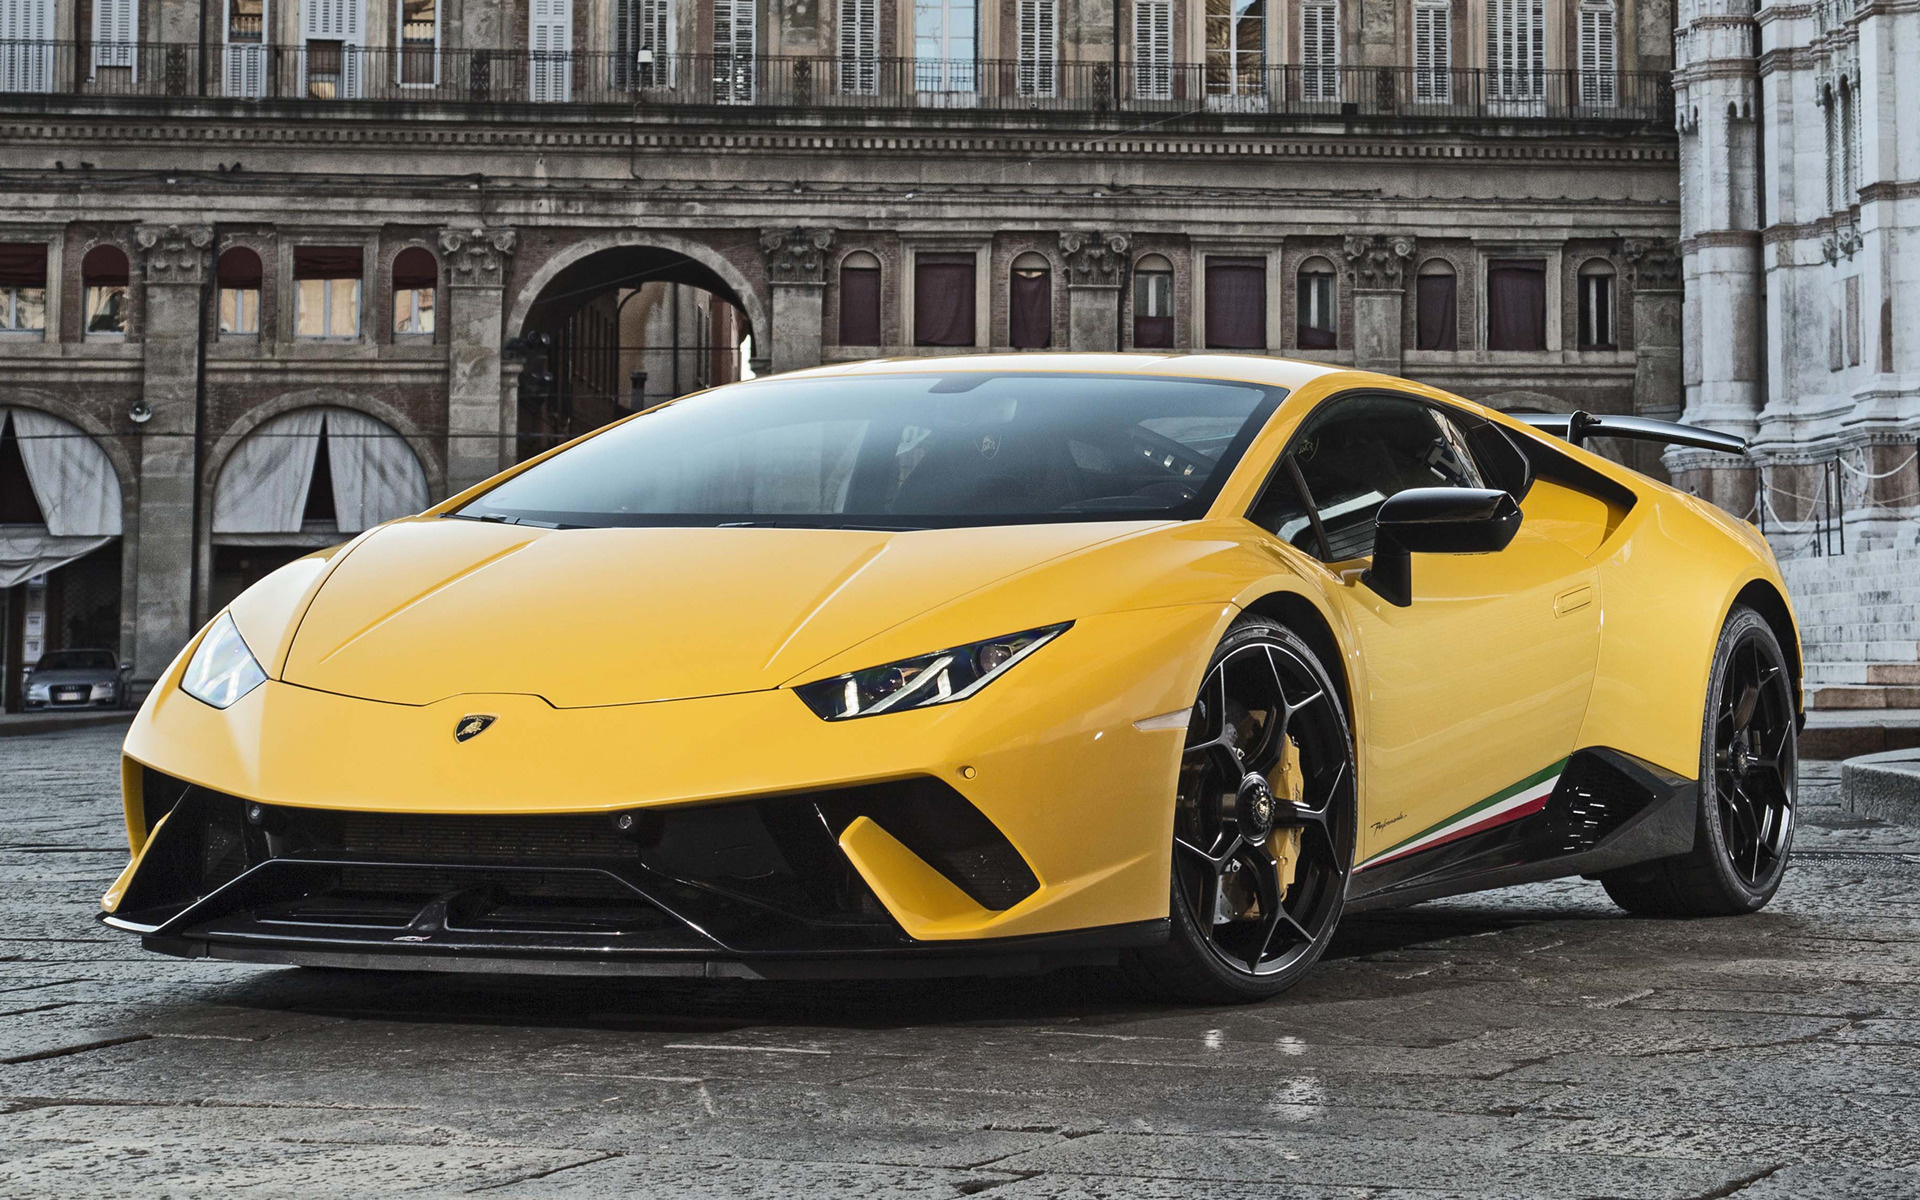 Lamborghini Huracan Performante 2017 Wallpapers and HD Images